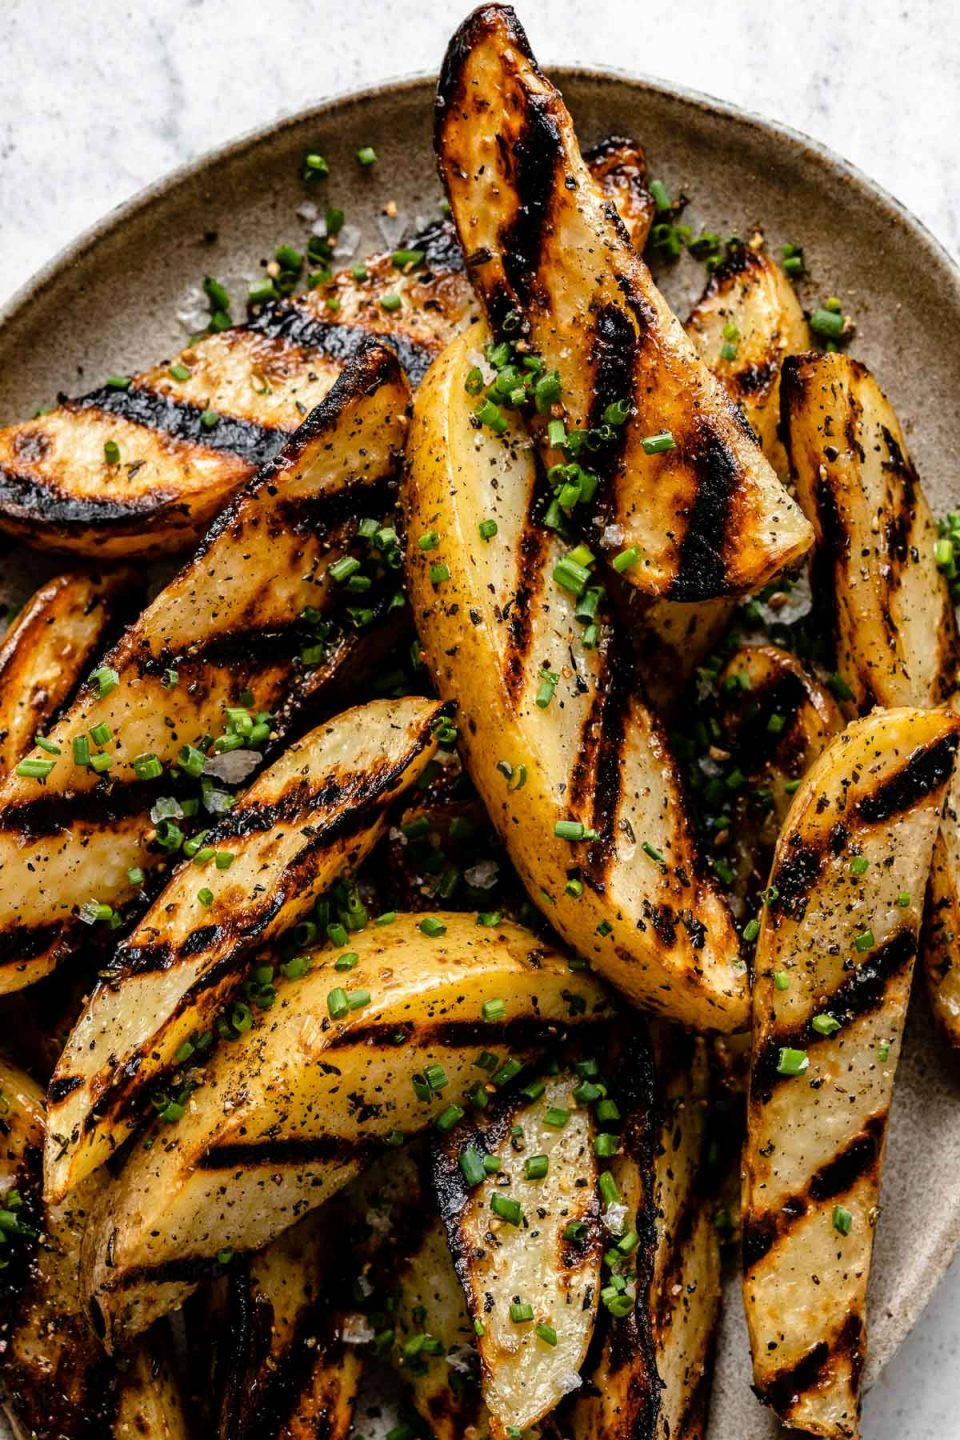 Close up of grilled potato wedges with char marks arranged on a brown speckled ceramic platter. The grilled potato wedges are garnished with kosher salt, ground black pepper, & freshly snipped chives. The platter sits on top of a white & gray marble surface.